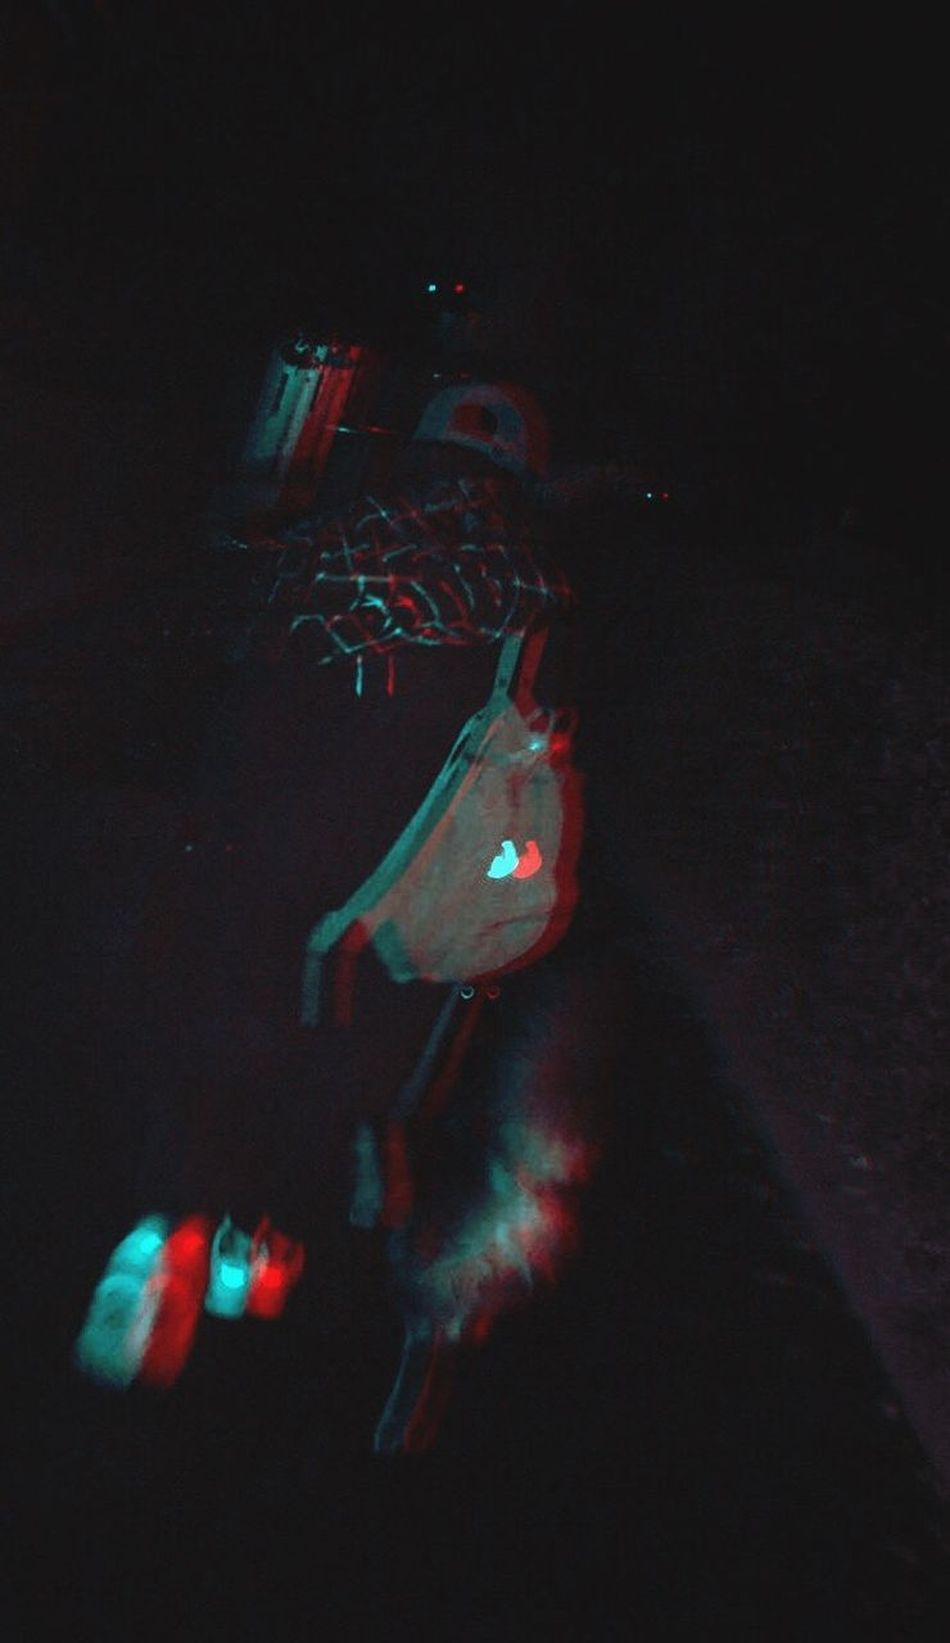 Inner peace muh'fucker, this whole life is a hallucination. Night Real People Illuminated Buddy Dog Luie Hallucinations Inner Peace Muh'fucker Fjällräven Asics All Black 3D